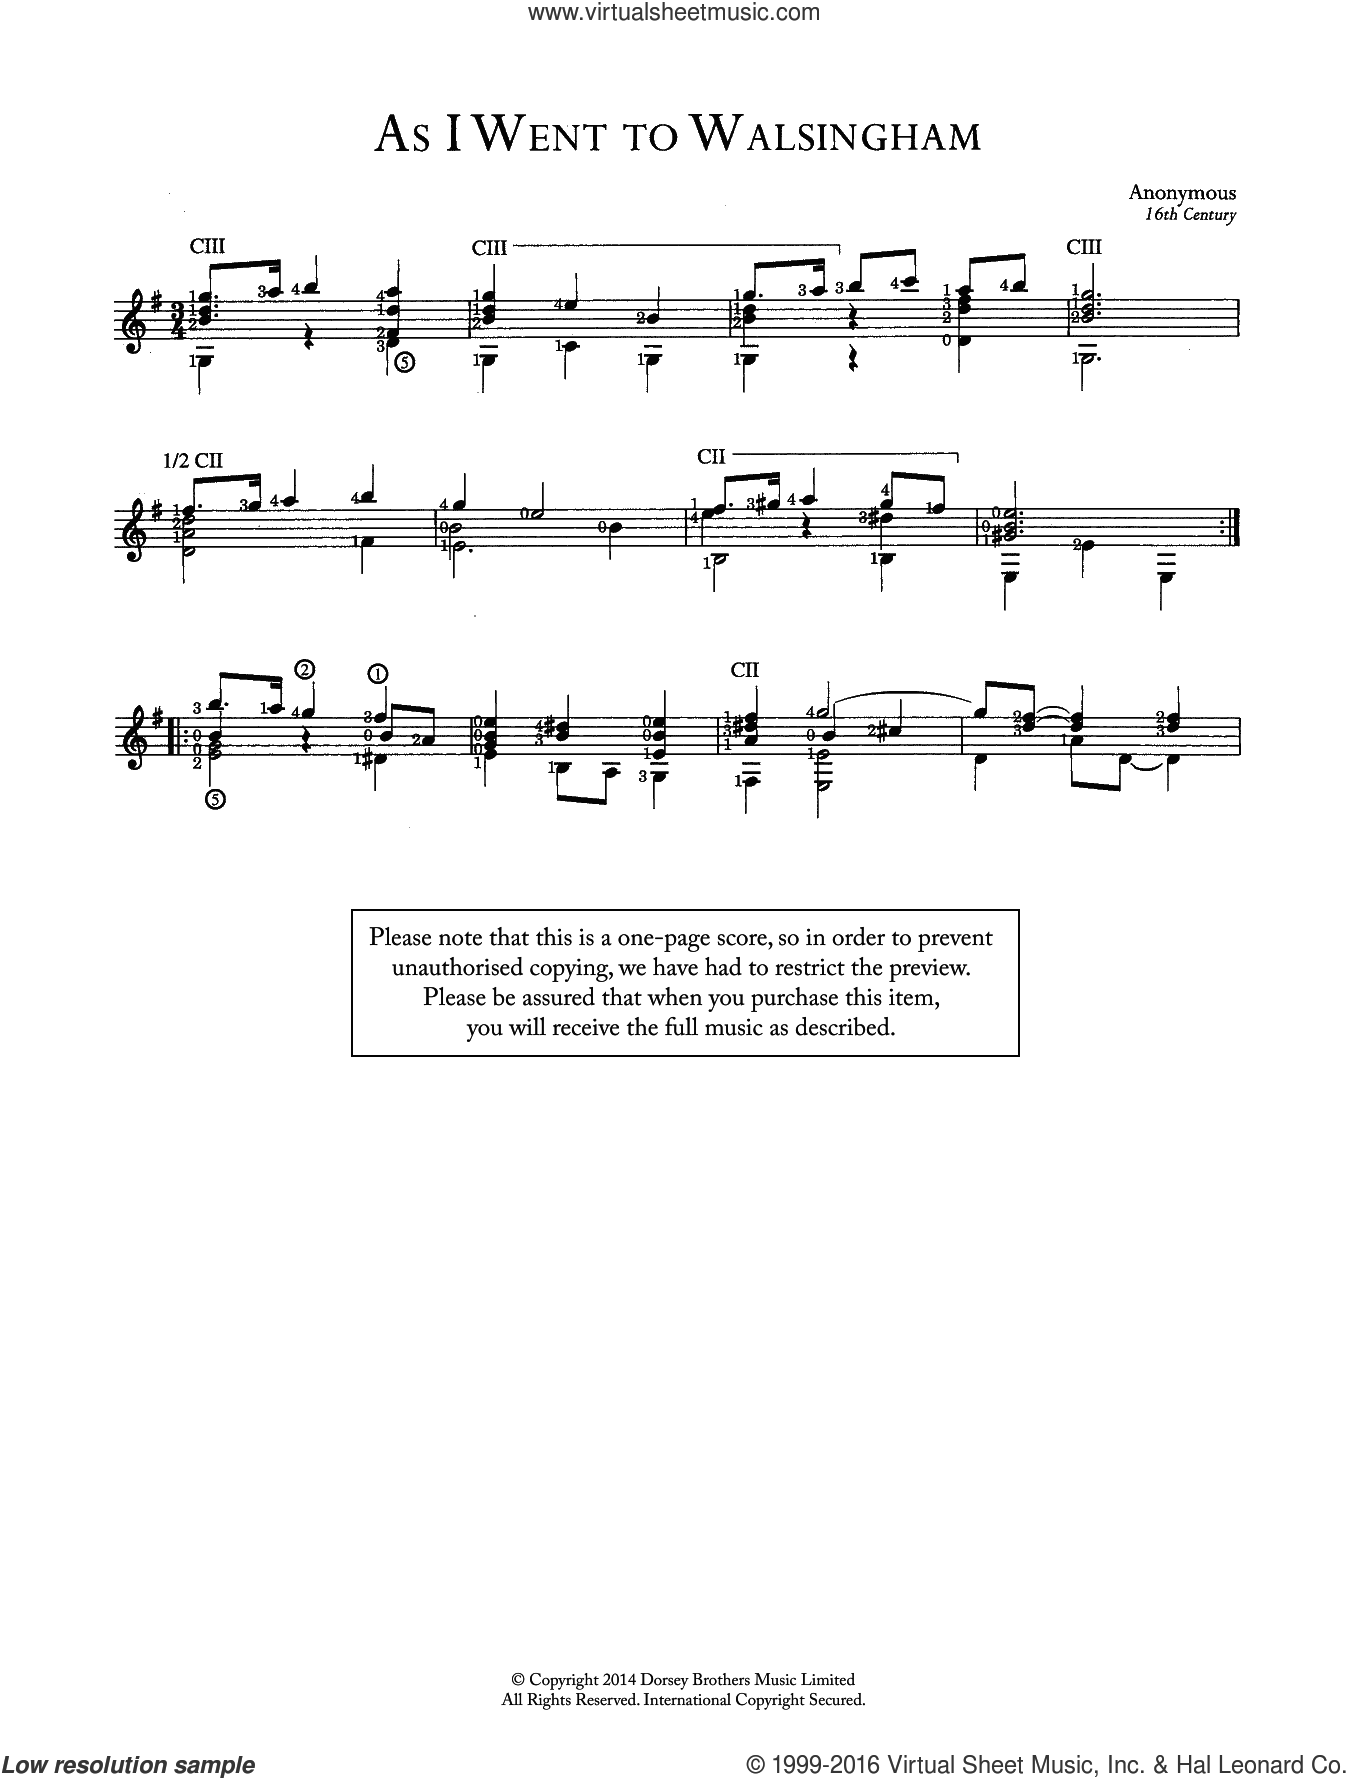 As I Went To Walsingham sheet music for guitar solo (chords) by Anonymous. Score Image Preview.